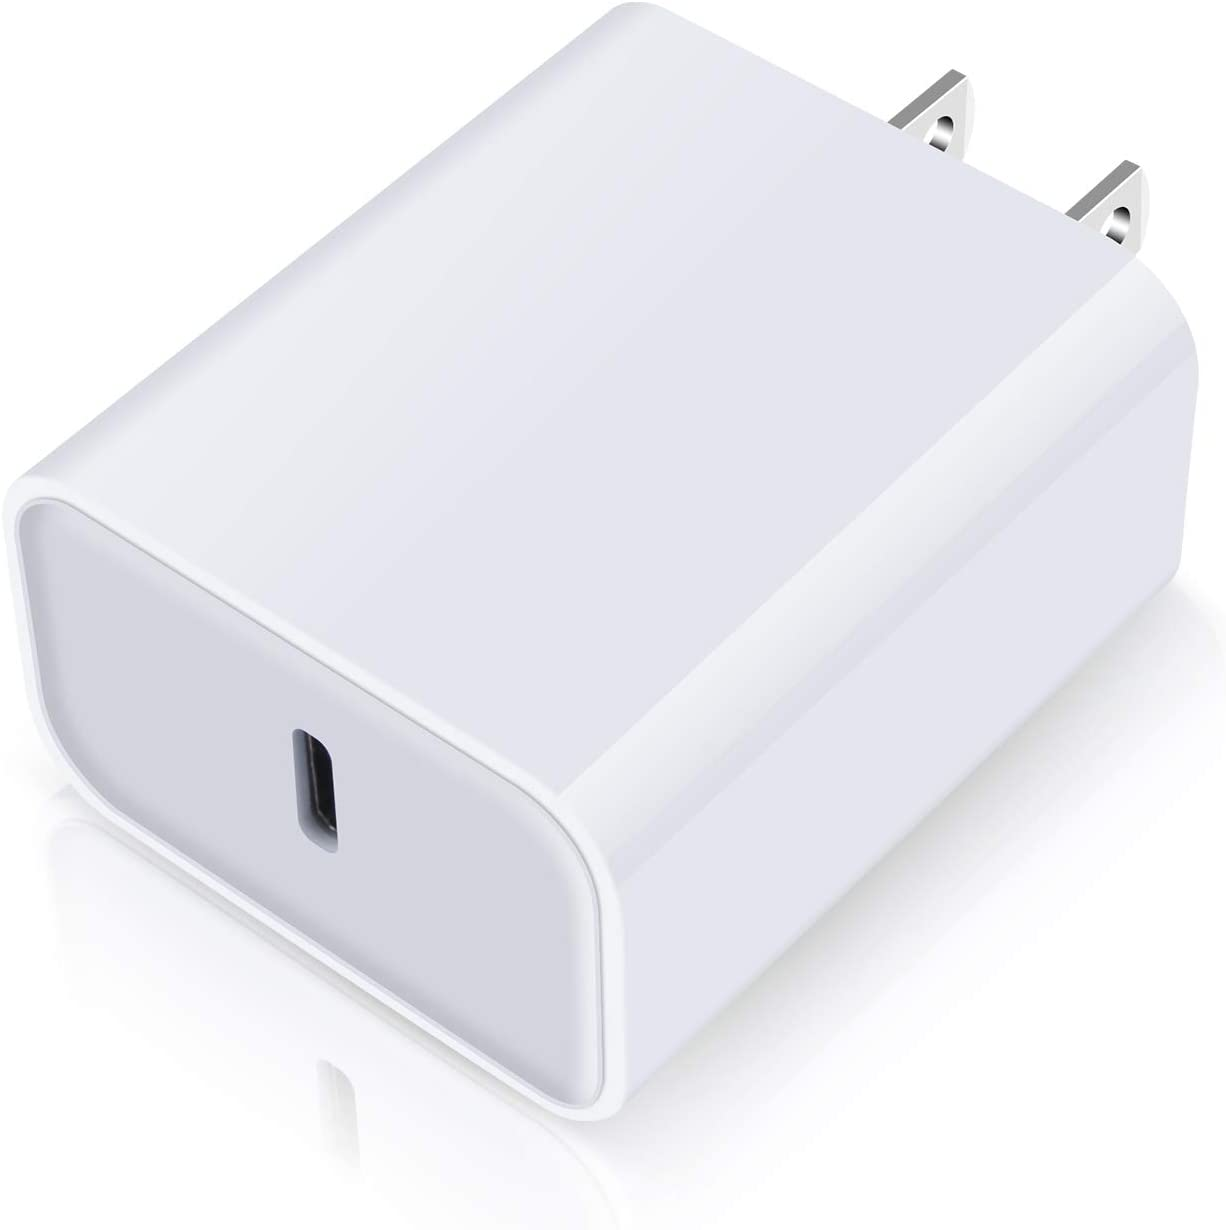 USB-C Charger for iPhone, 18W Fast PD Charger Power Adapter, USB C Plug Block Brick Box Compatible for iPhone SE/12/11 Pro Max X 8 Plus,Airpods Pro,MacBook,iPad Pro/Air/Mini,Samsung Galaxy S20,LG K52